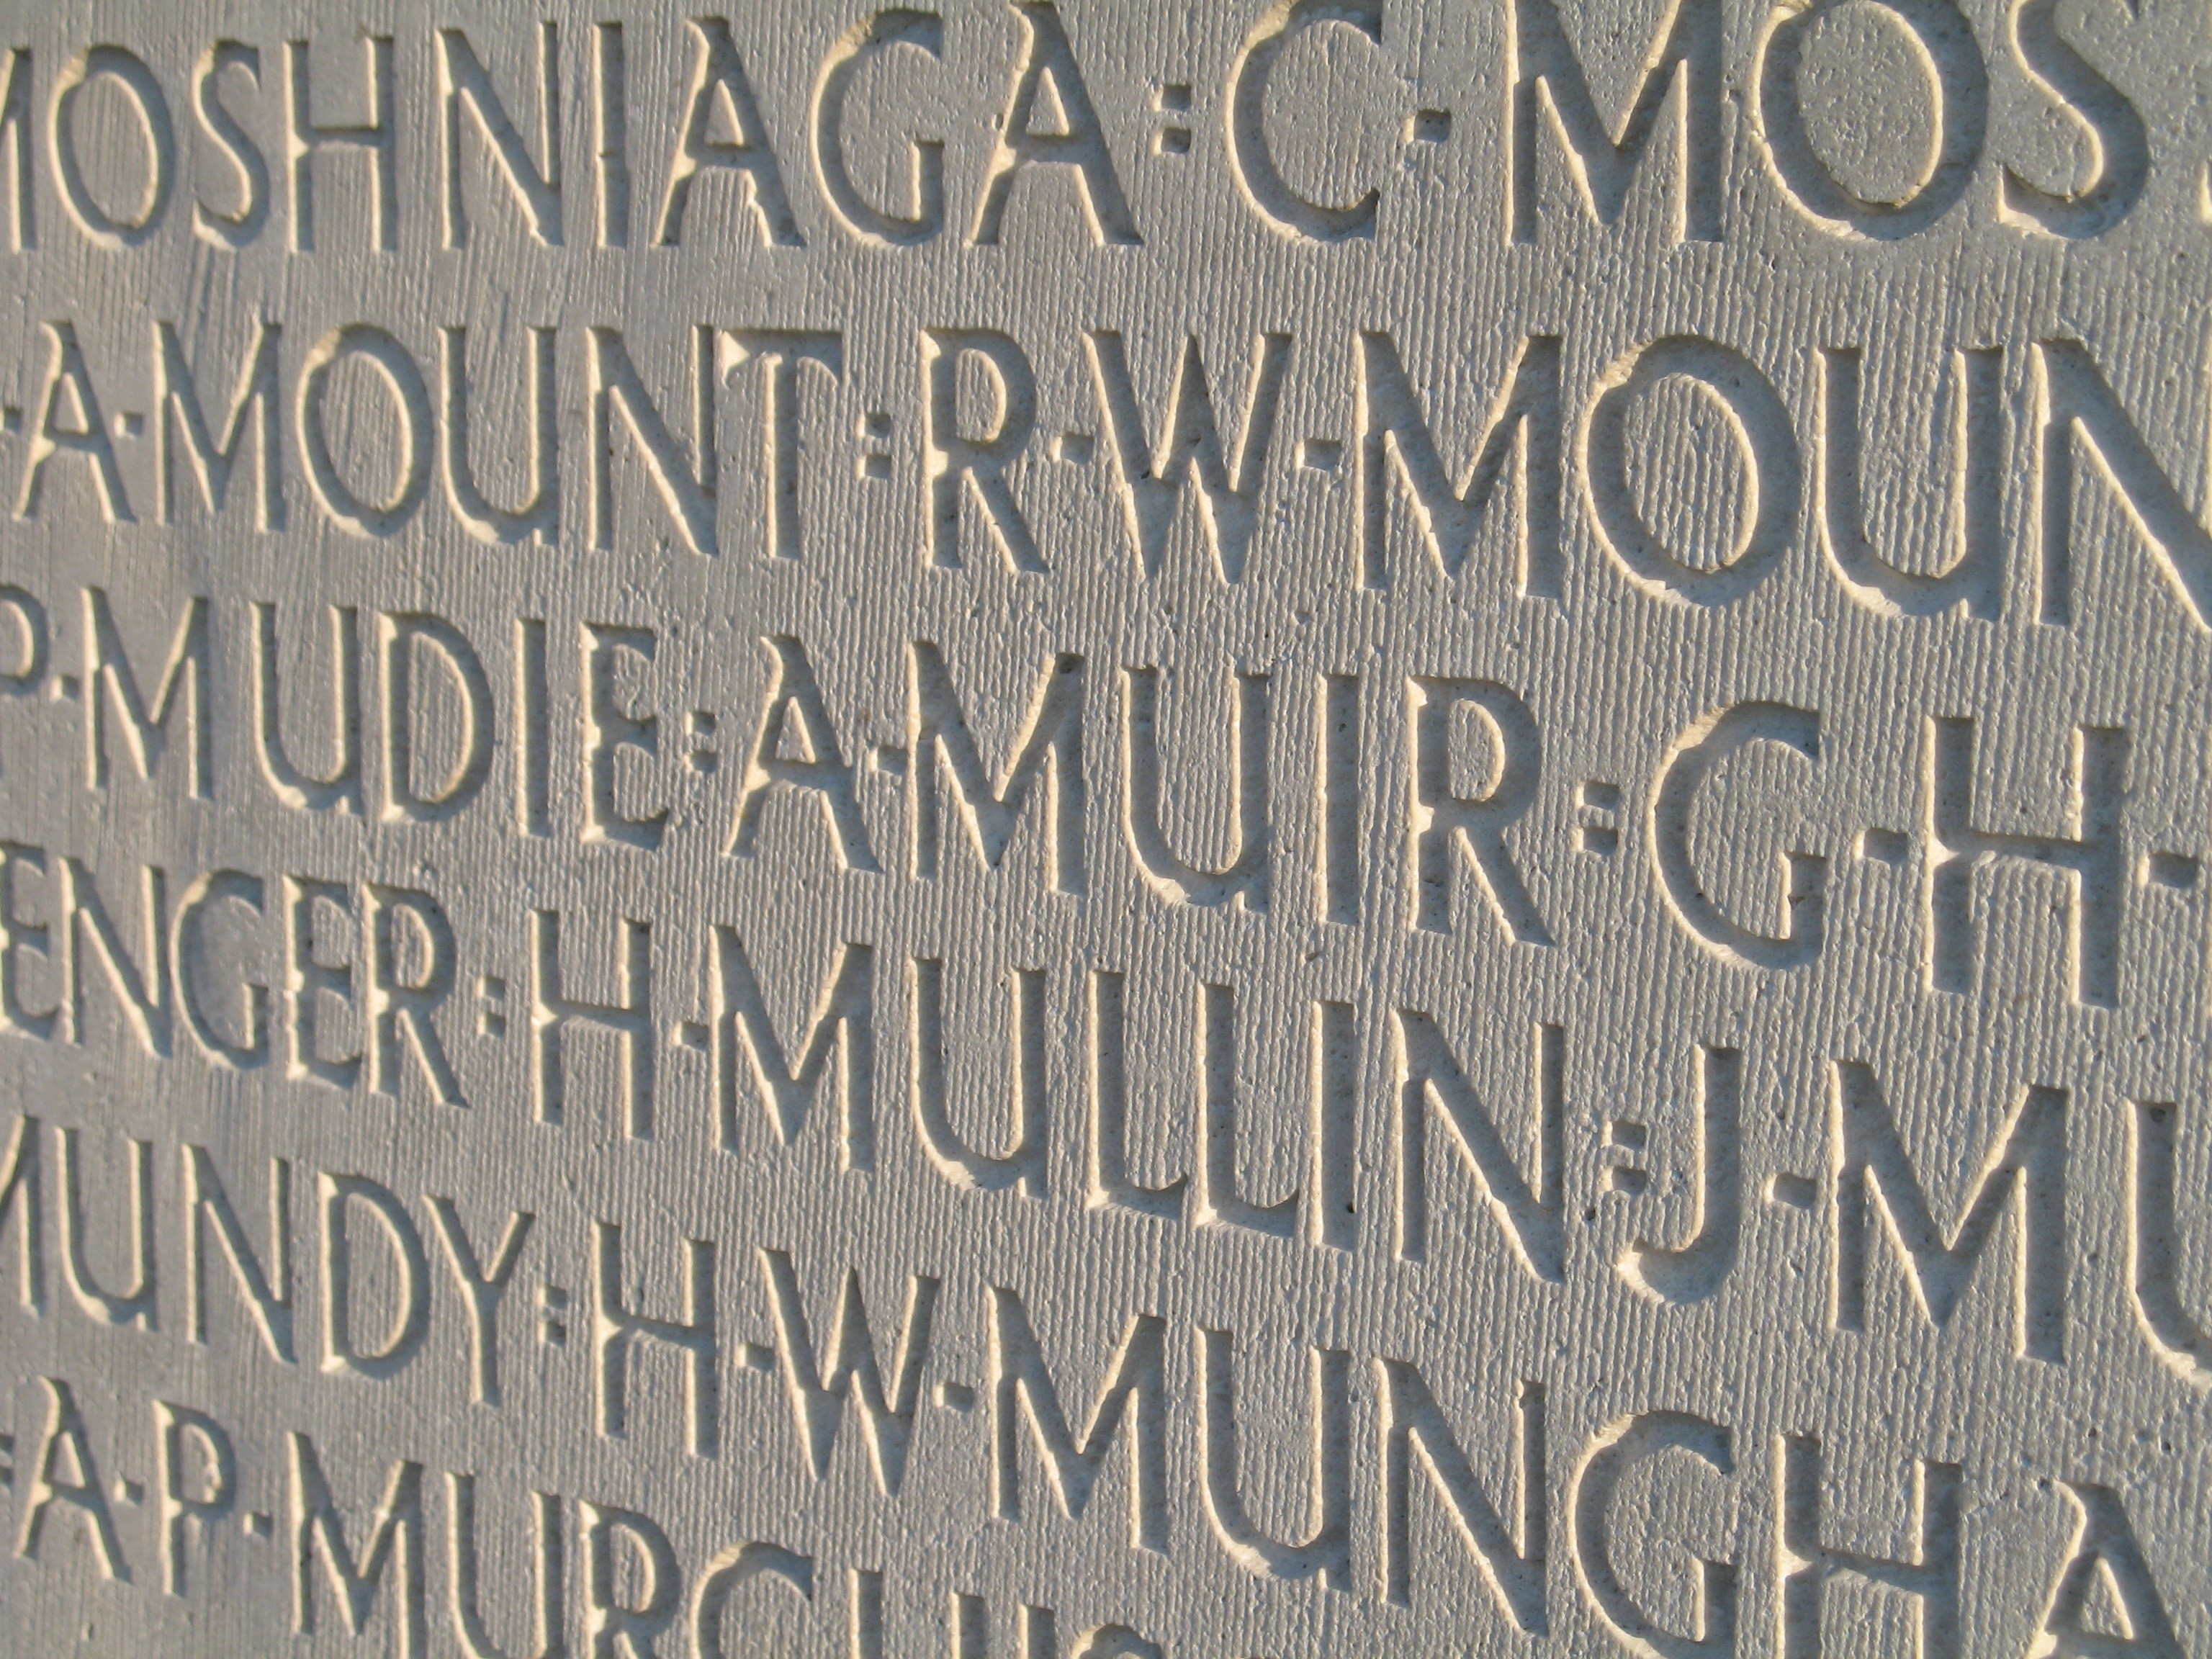 Names on Vimy Monument